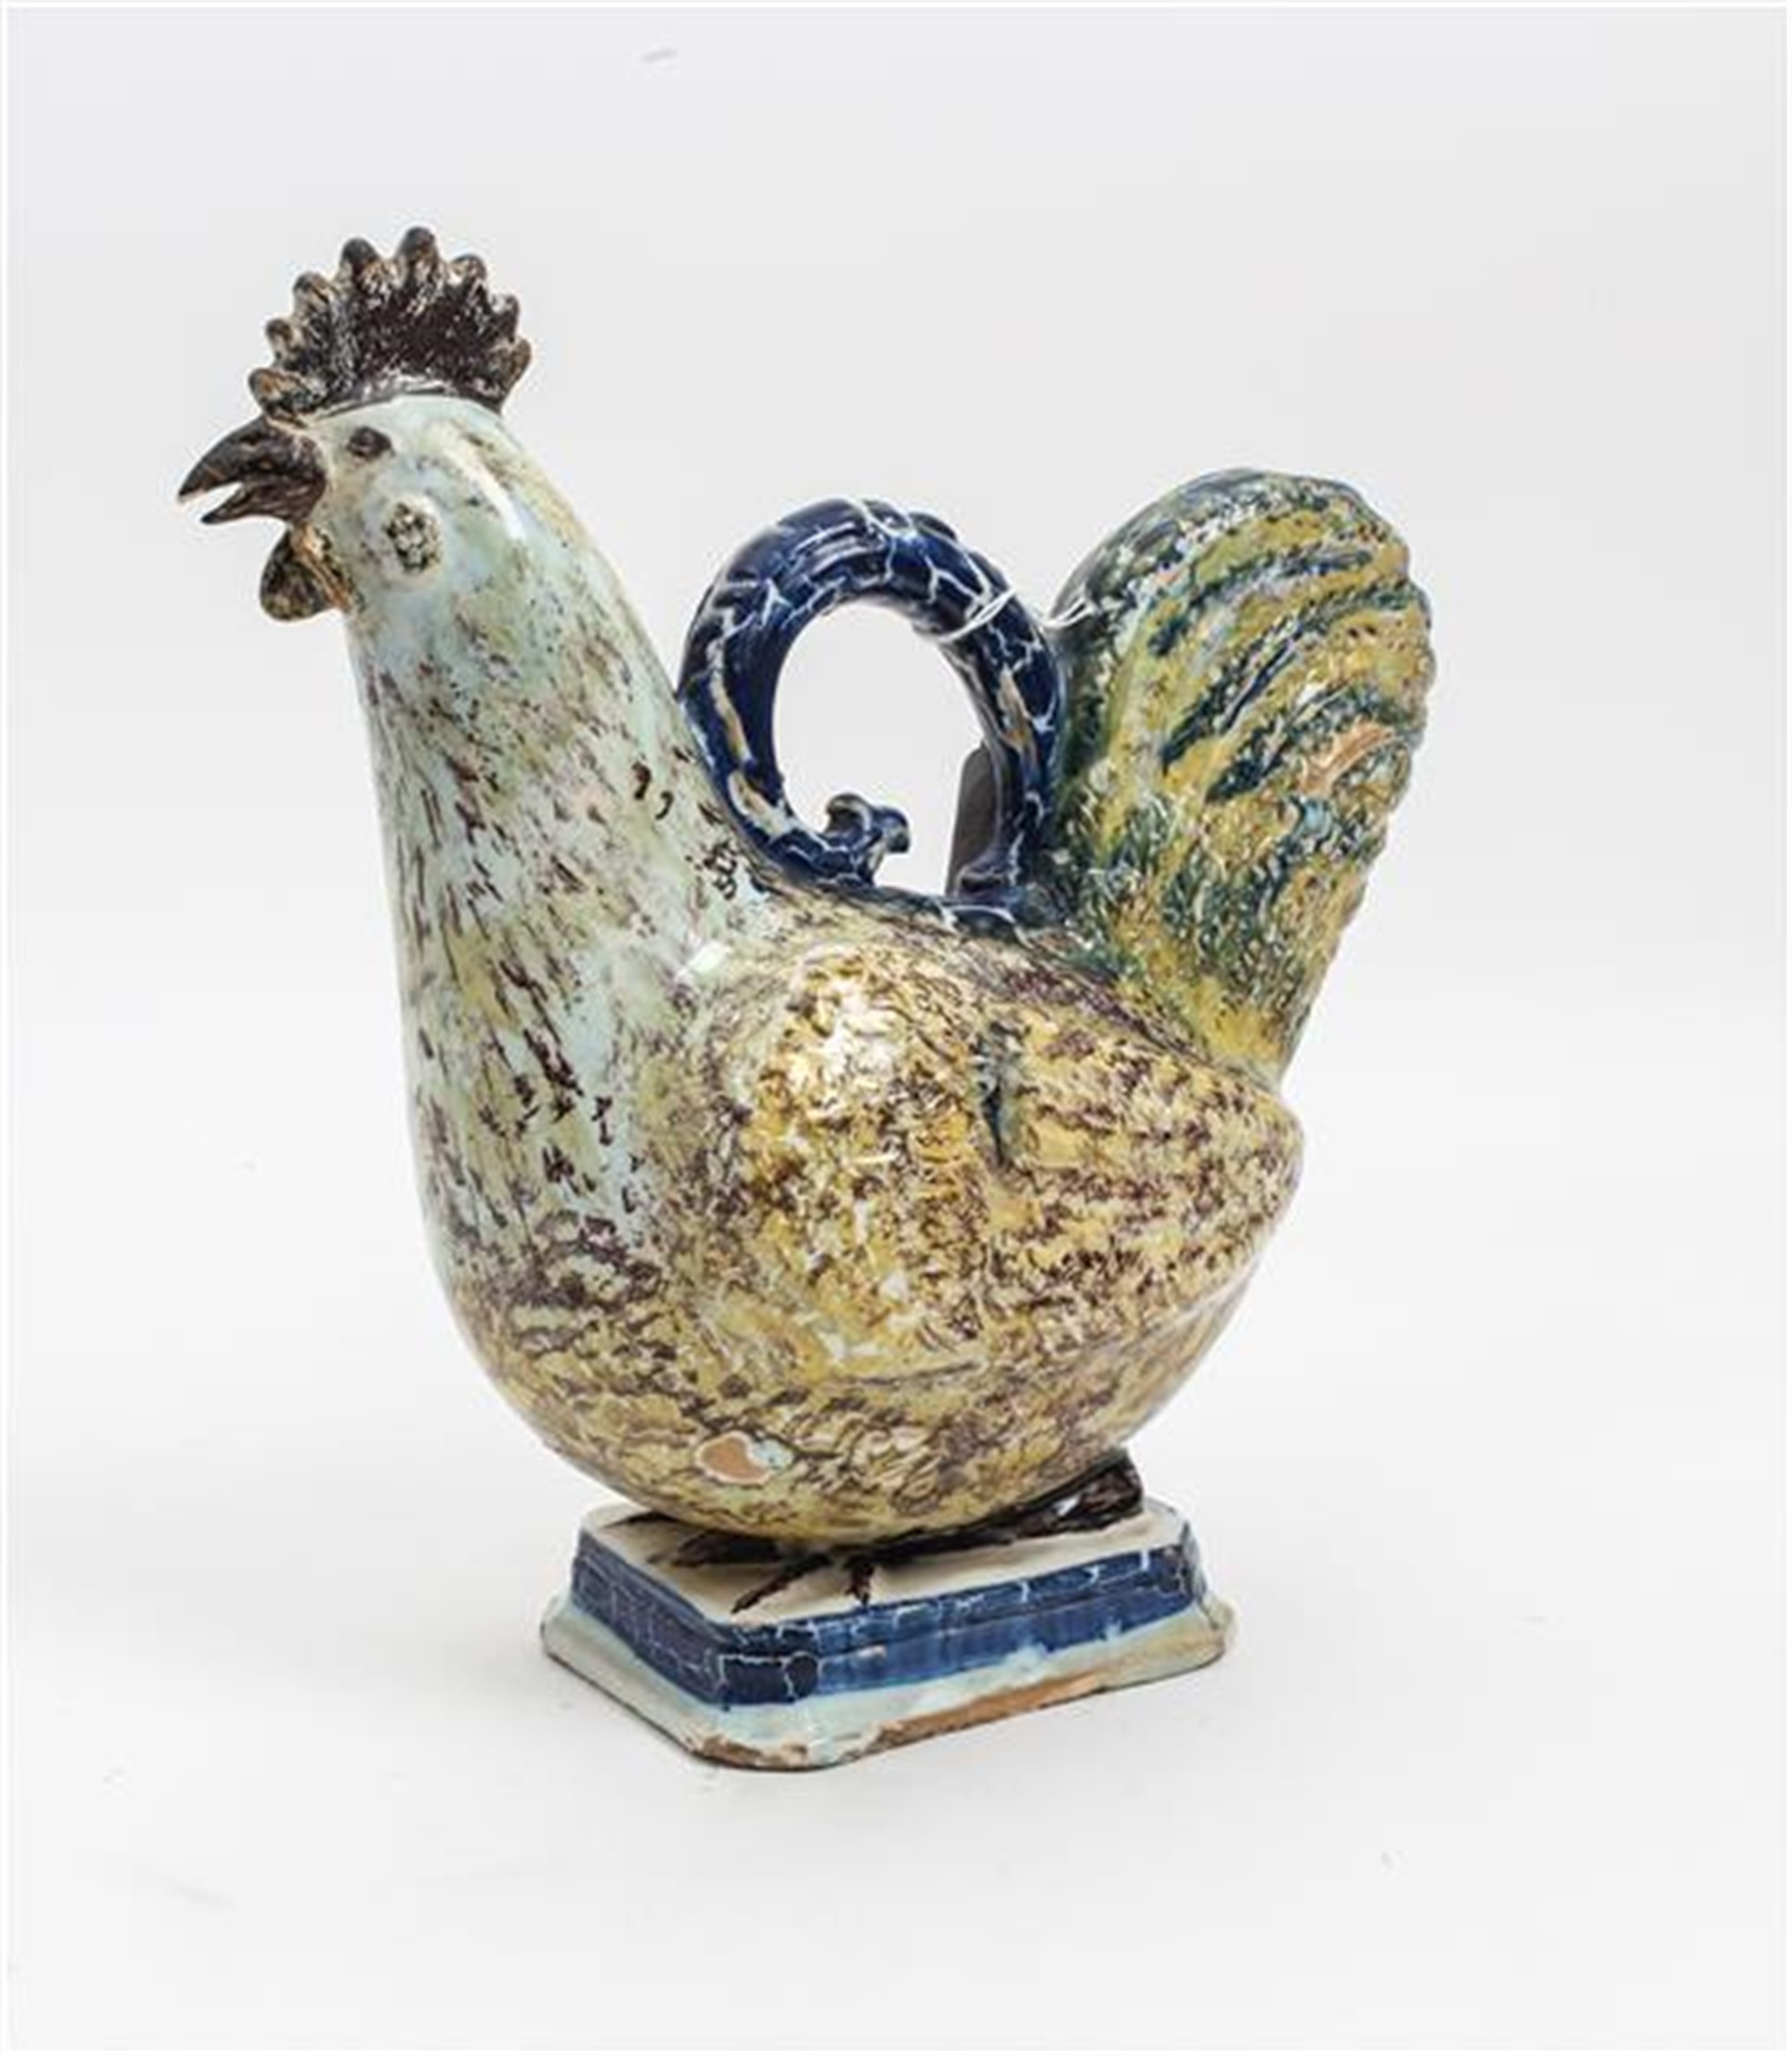 ENGLISH CERAMIC FIGURE OF ROOSTER